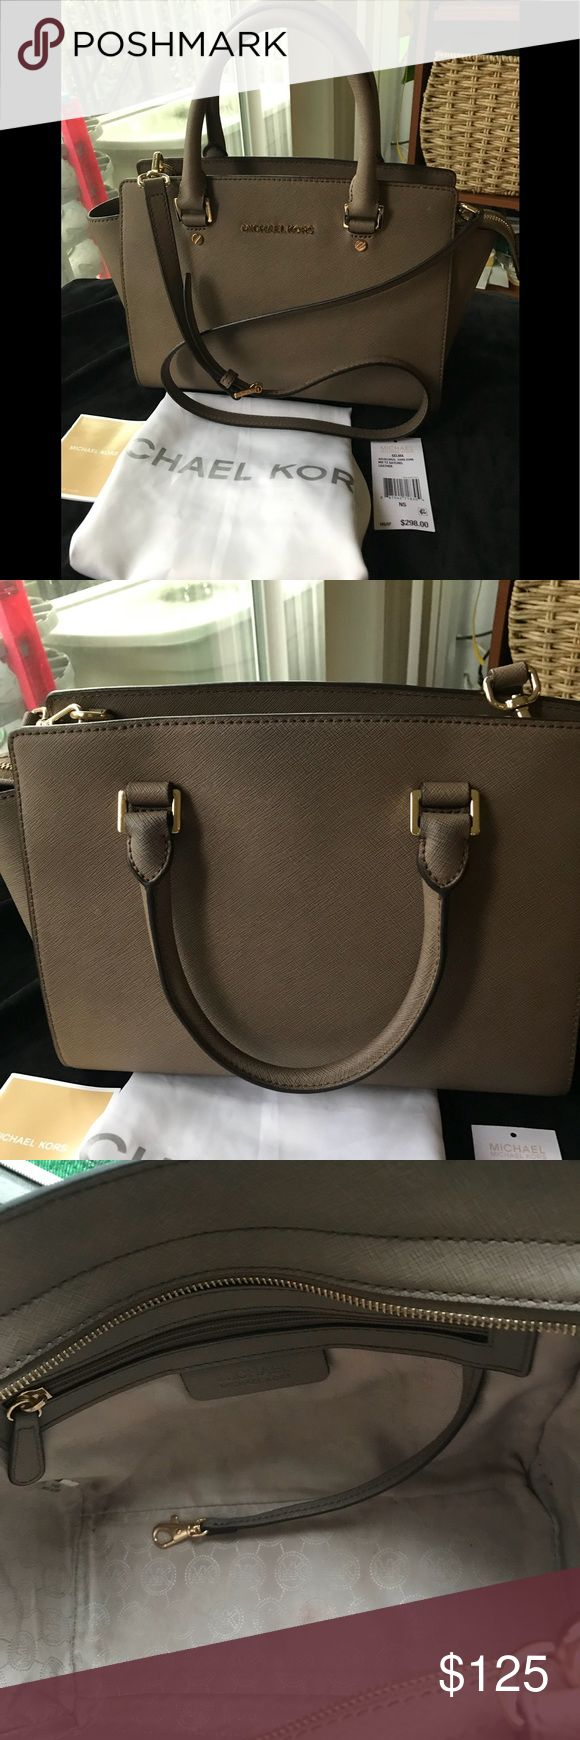 Michael Kors Selma medium satchel Authentic and gently used.  Tags are unattached  Dark Dune color very versatile  Saffiano Leather with gold hard ware  There are small dirt marks inside, back handles have some light darkening, bottom gold ware has some scratches  Comes with a dust bag and MK paper shopping bag! Michael Kors Bags Satchels